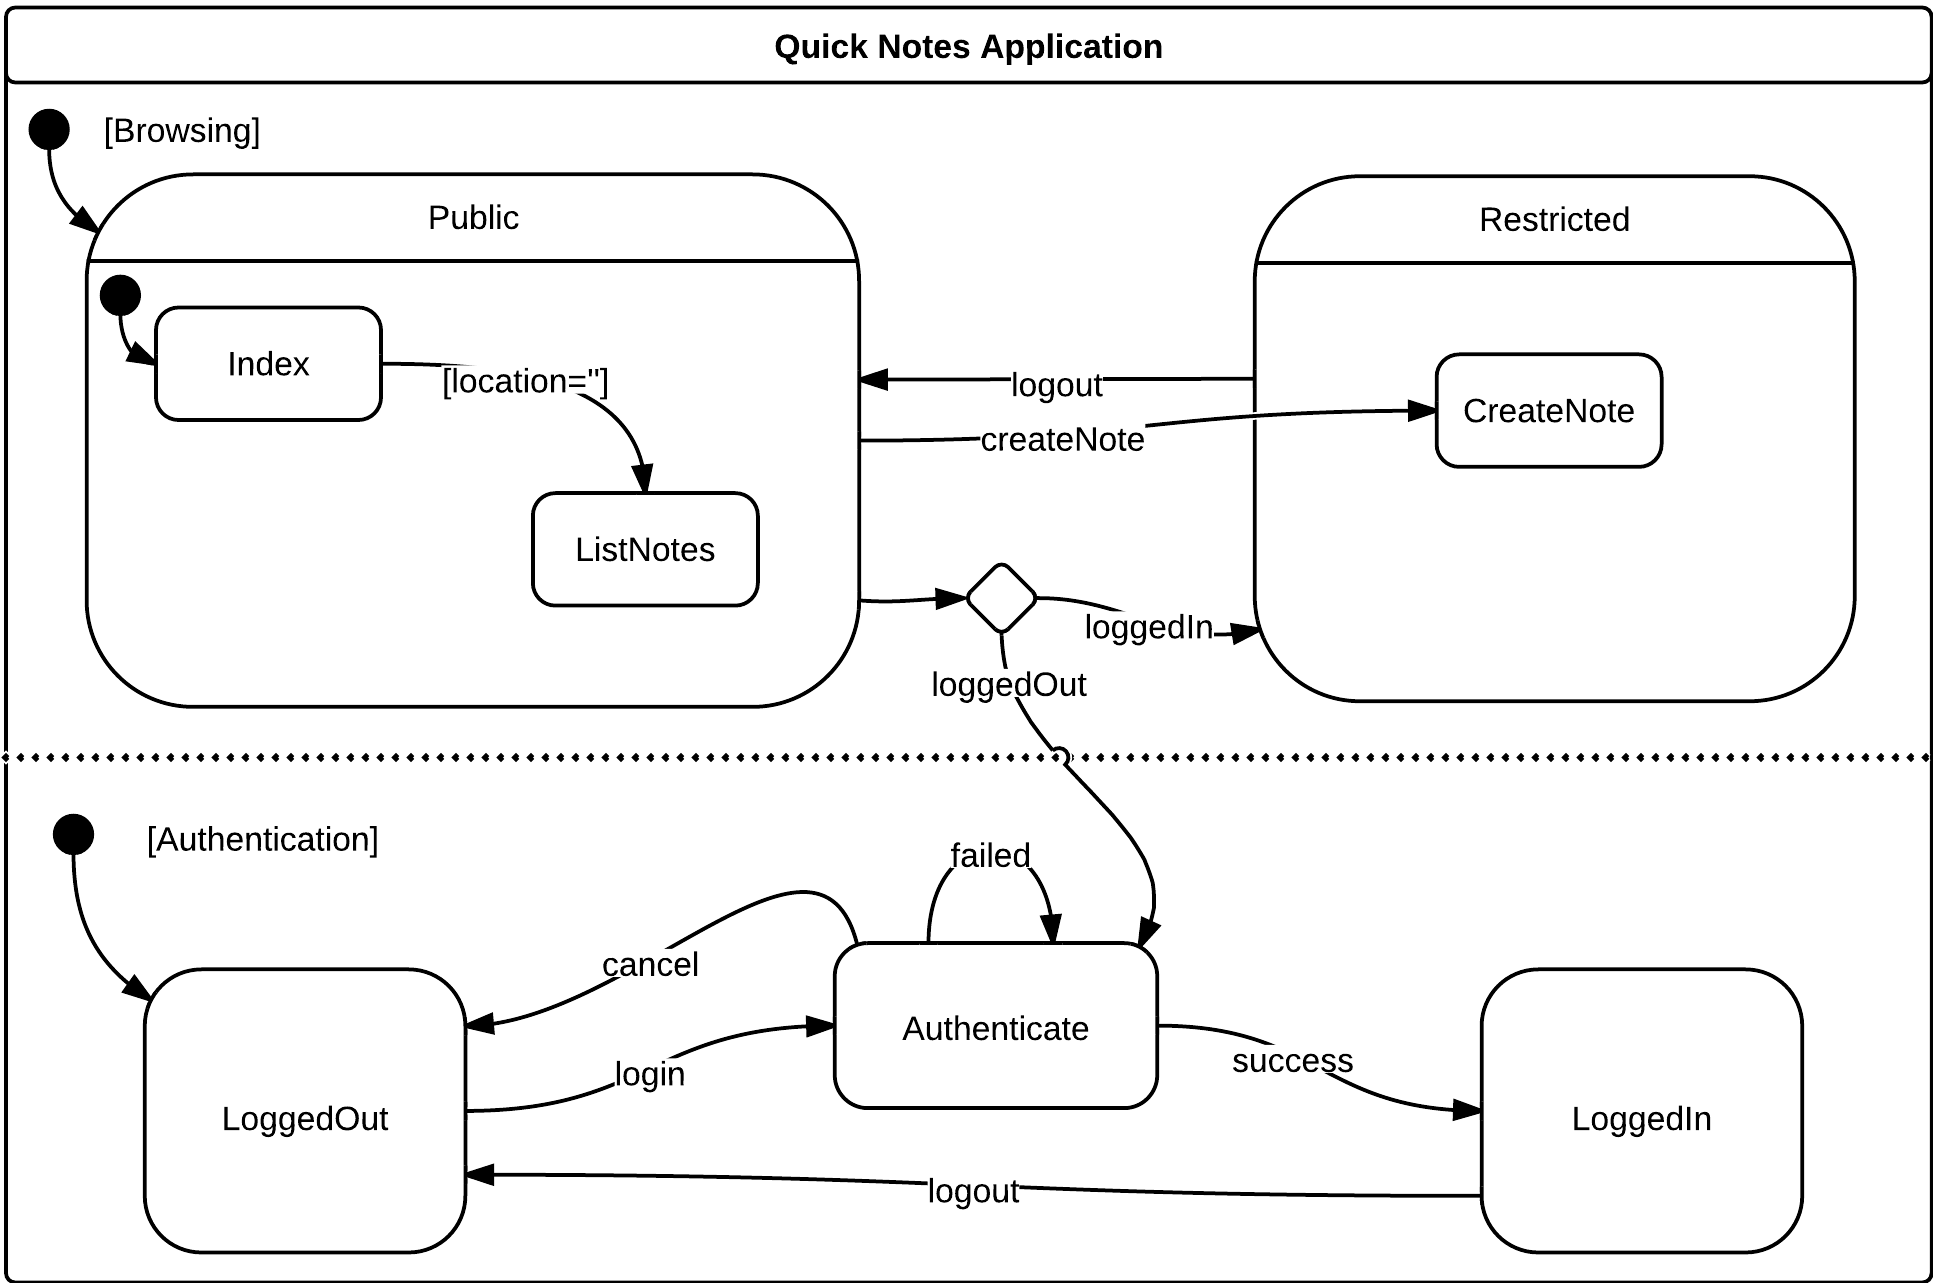 Statechart Specification of Quick Notes